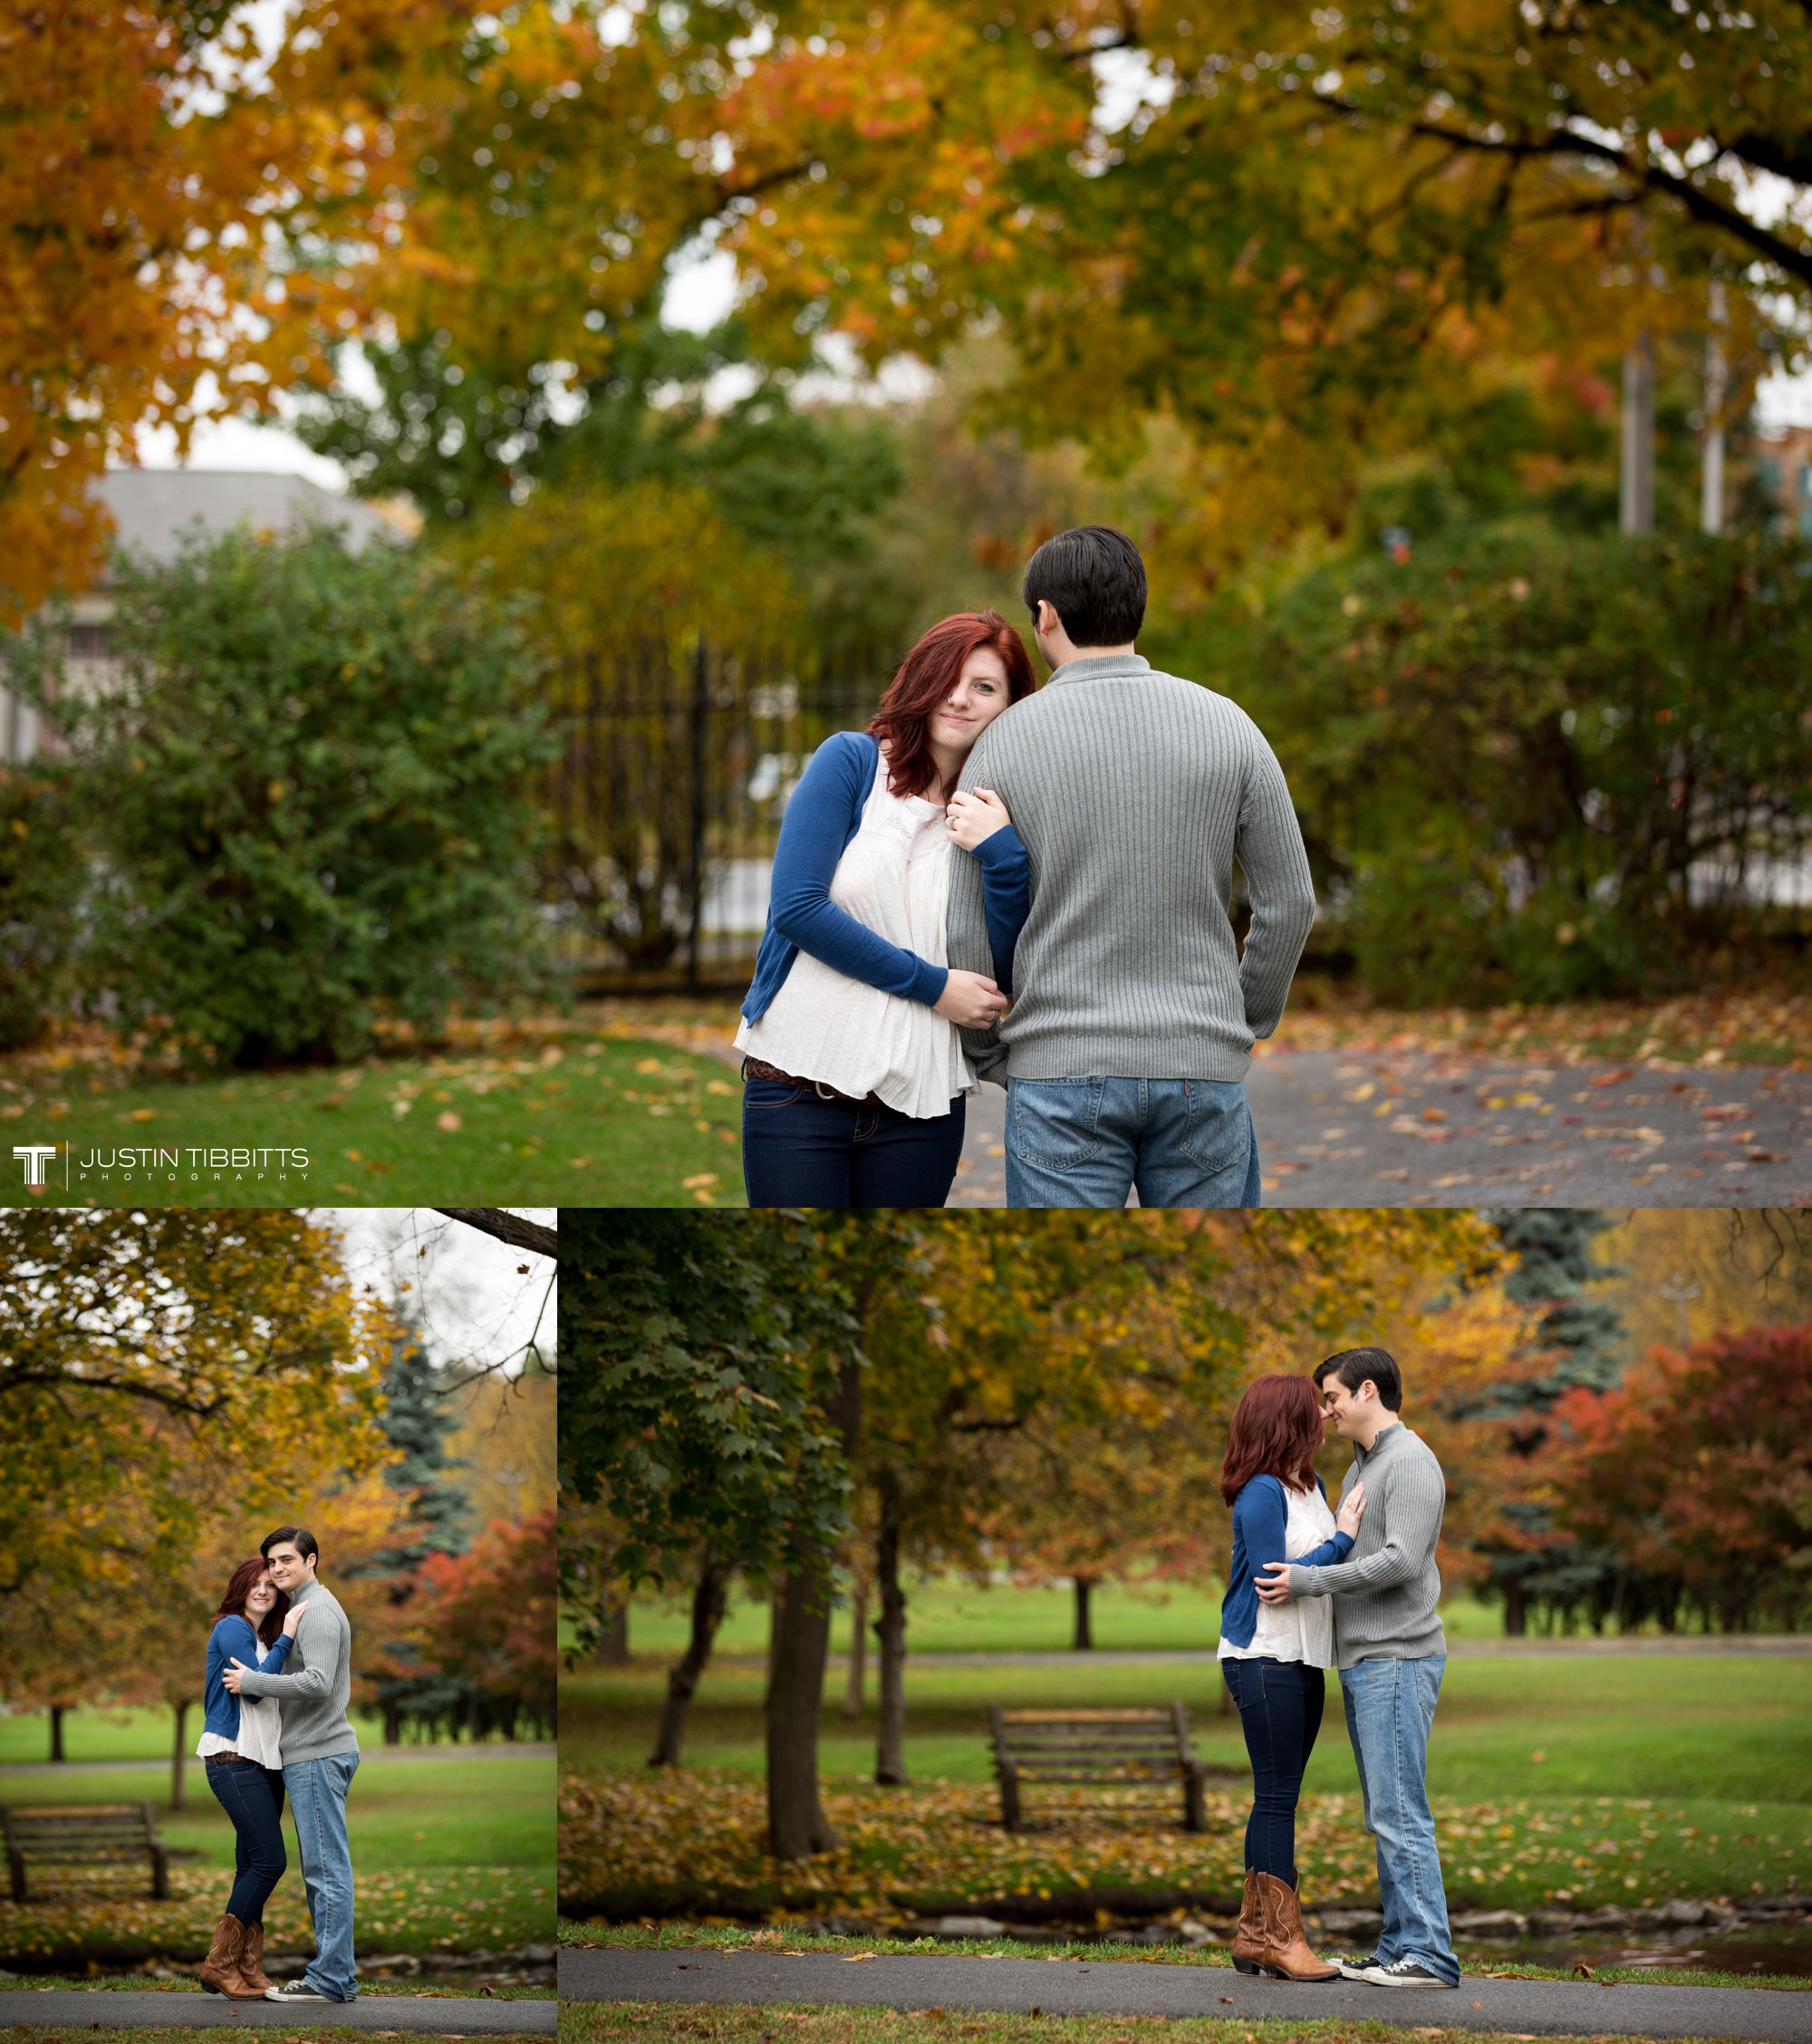 Justin Tibbitts Photography Sara and Michaels Congress Park, Saratoga, NY E-shoot-8